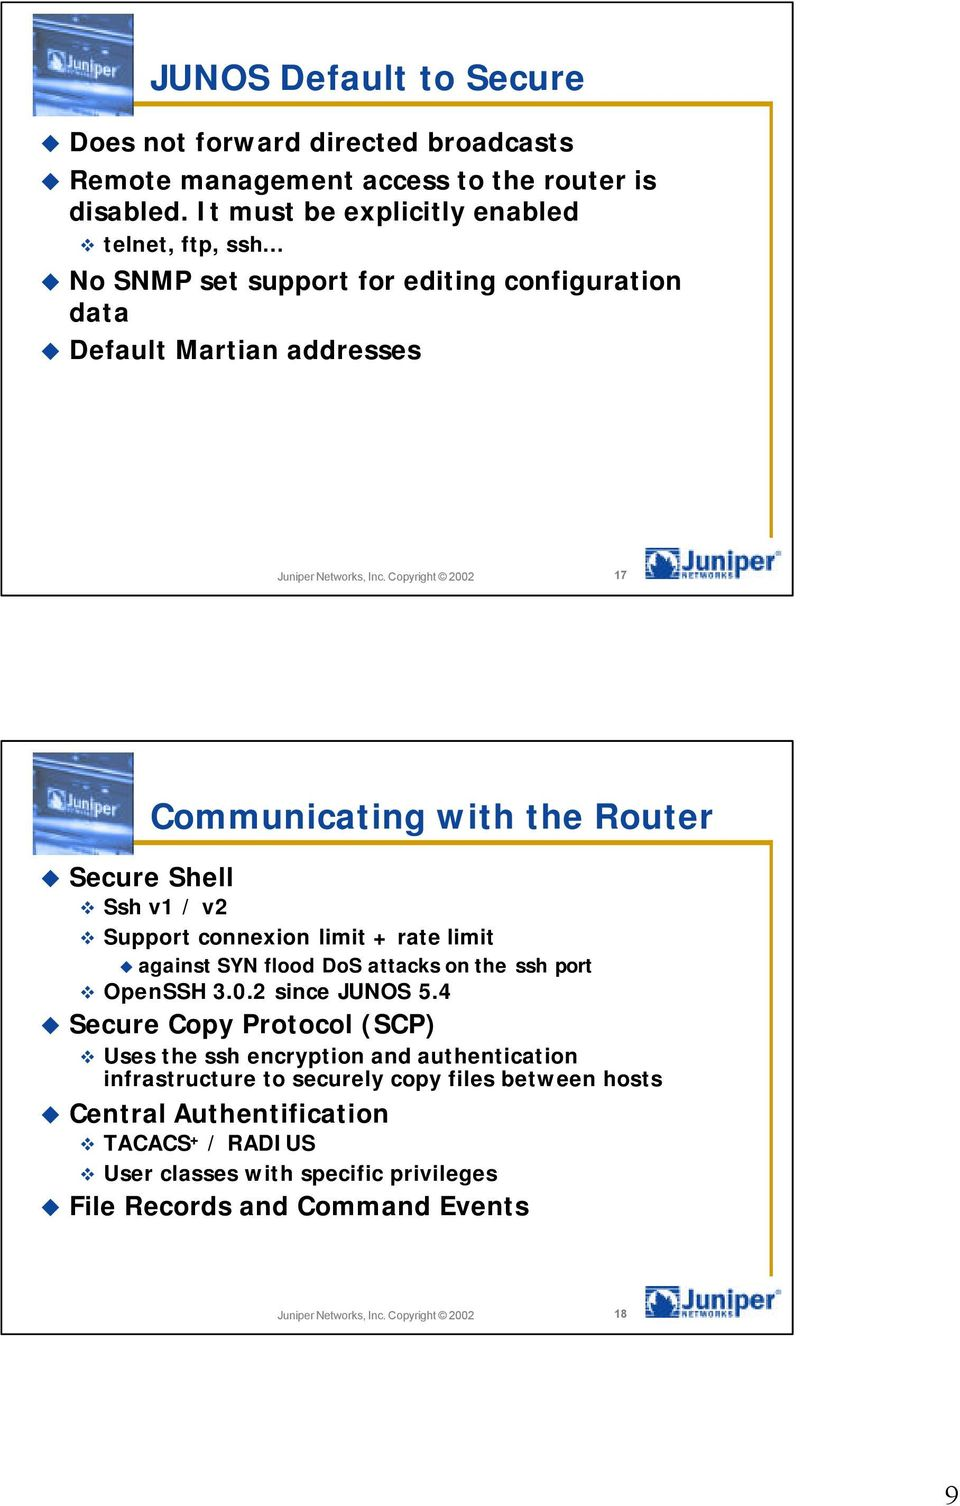 Securing Networks with Juniper Networks - PDF